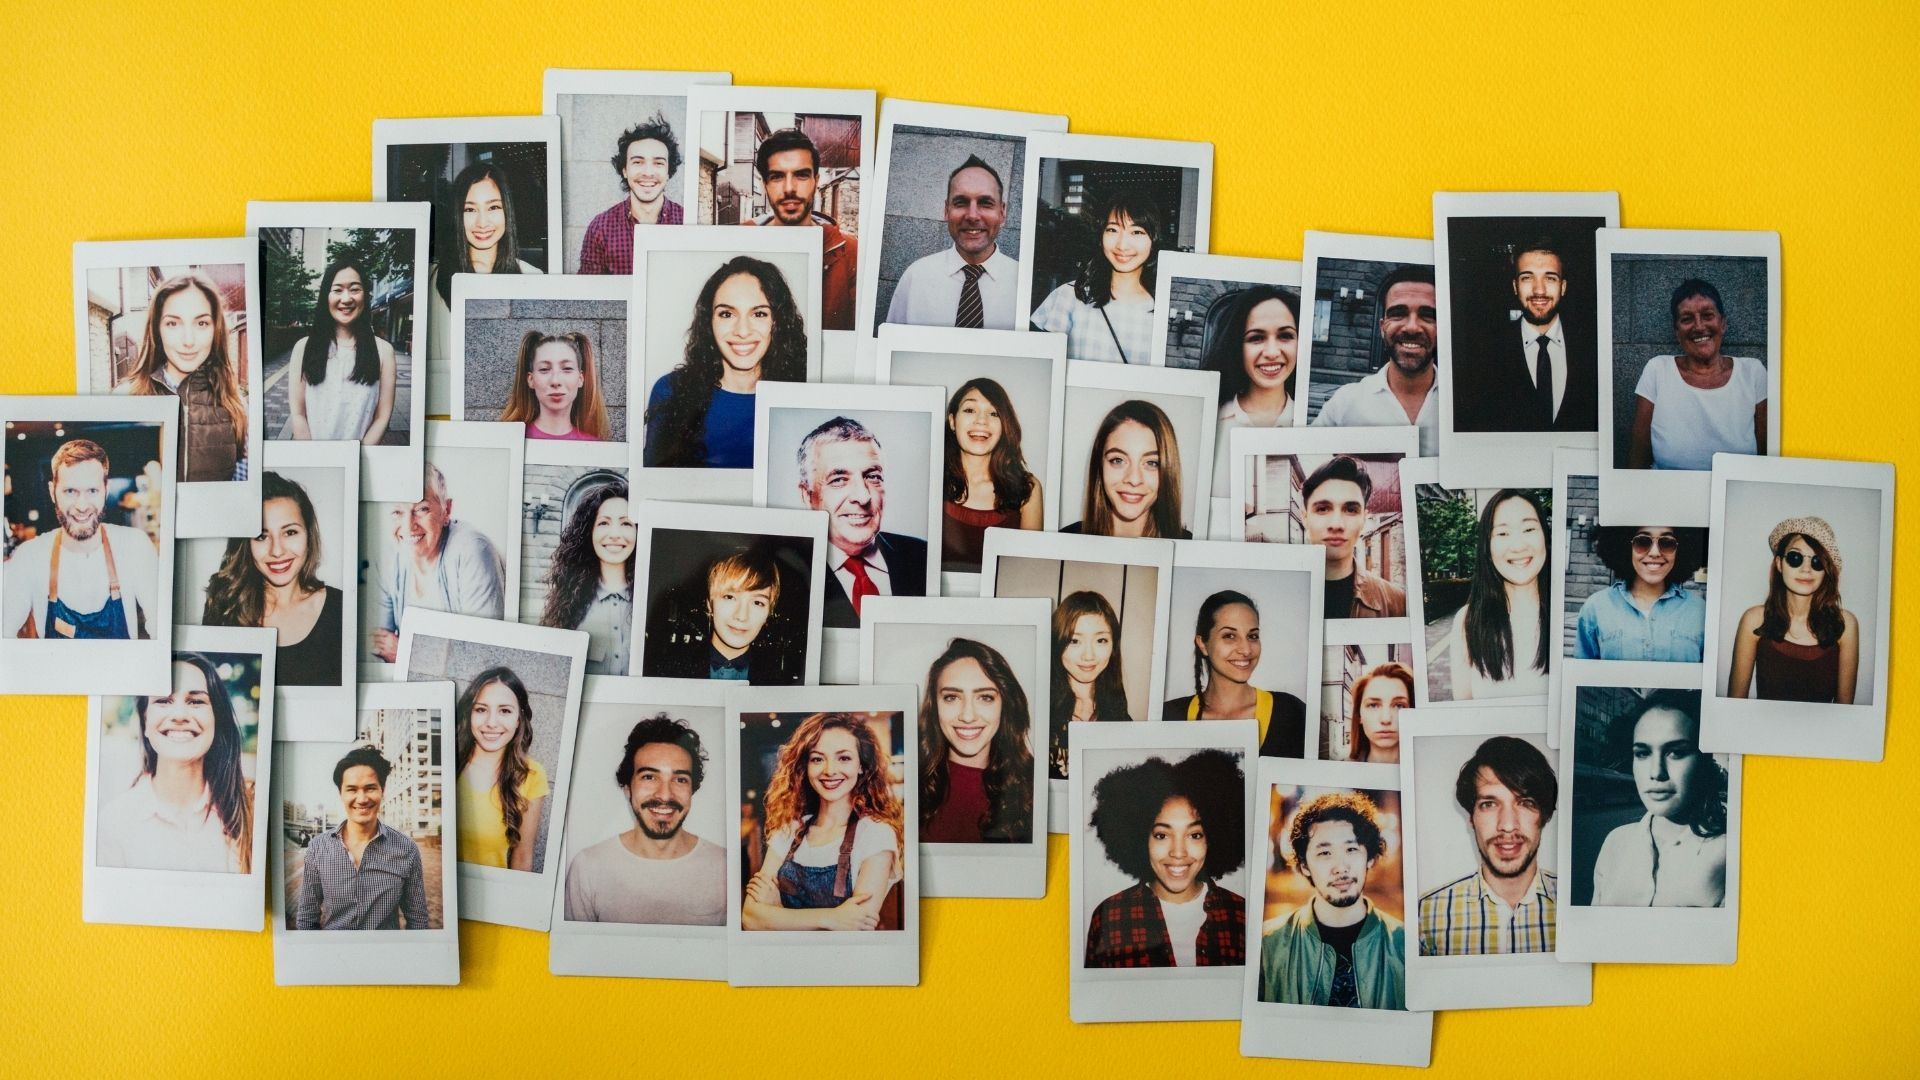 Illustrate of smiling faces to illustrate how to create a welcoming HR department.